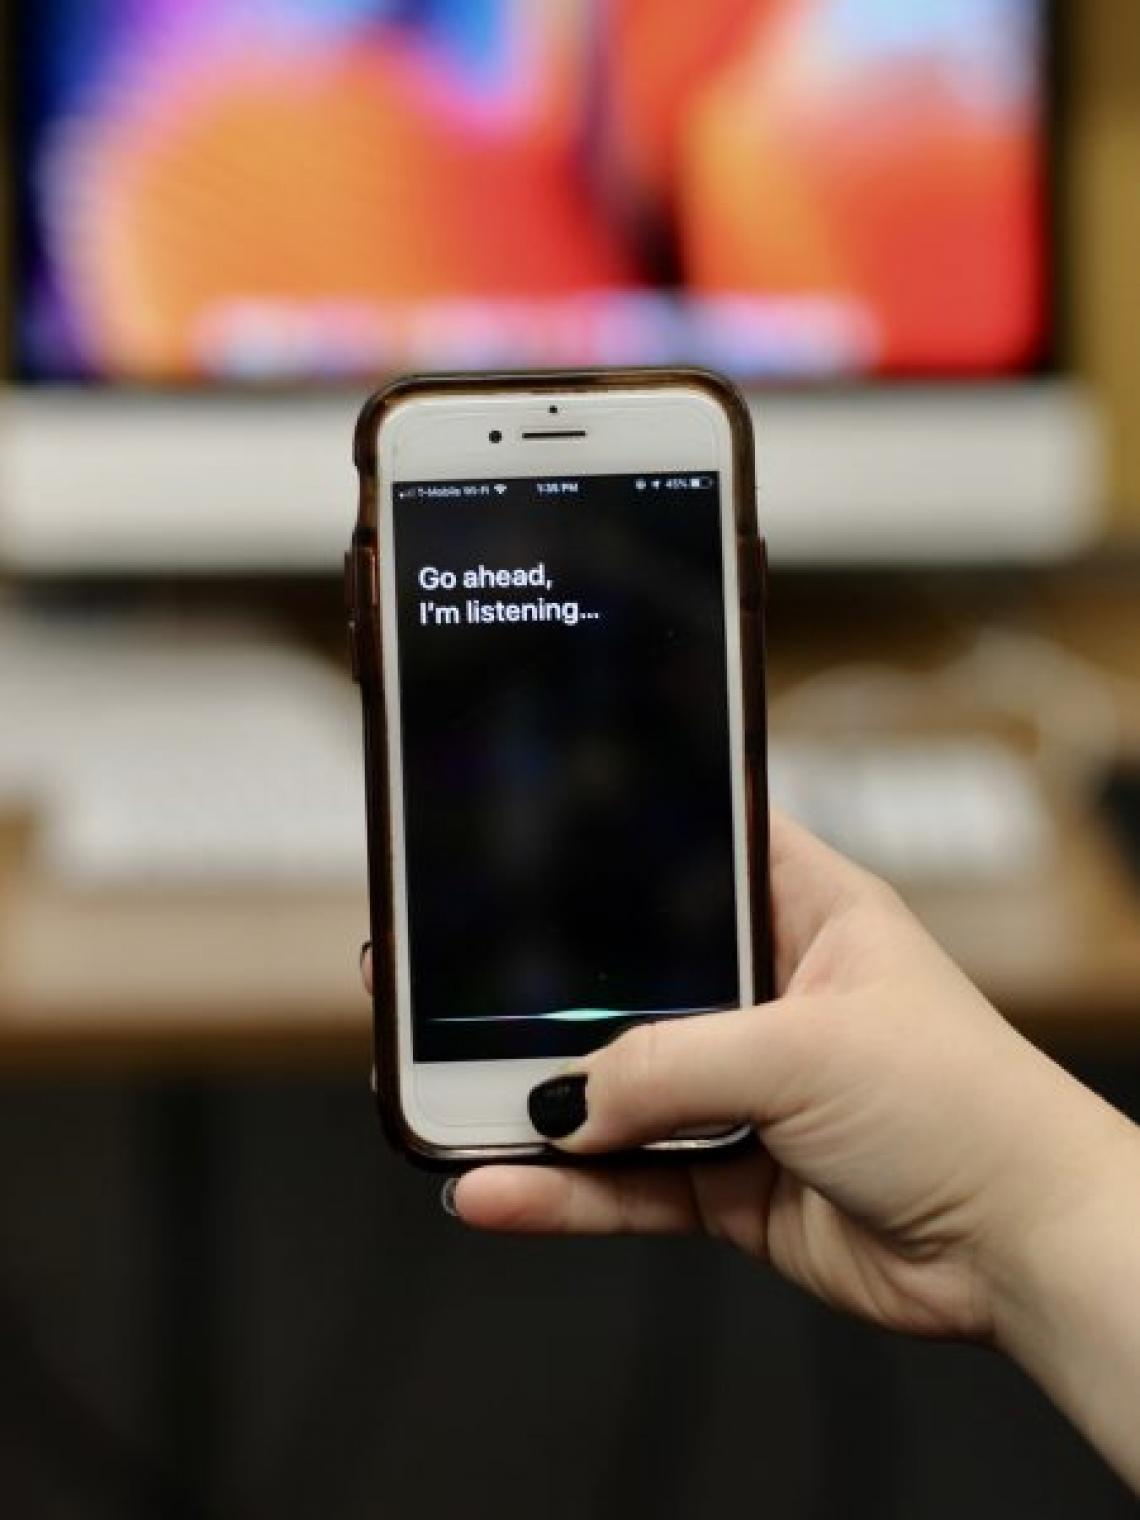 Using Apple's Siri for voice commands